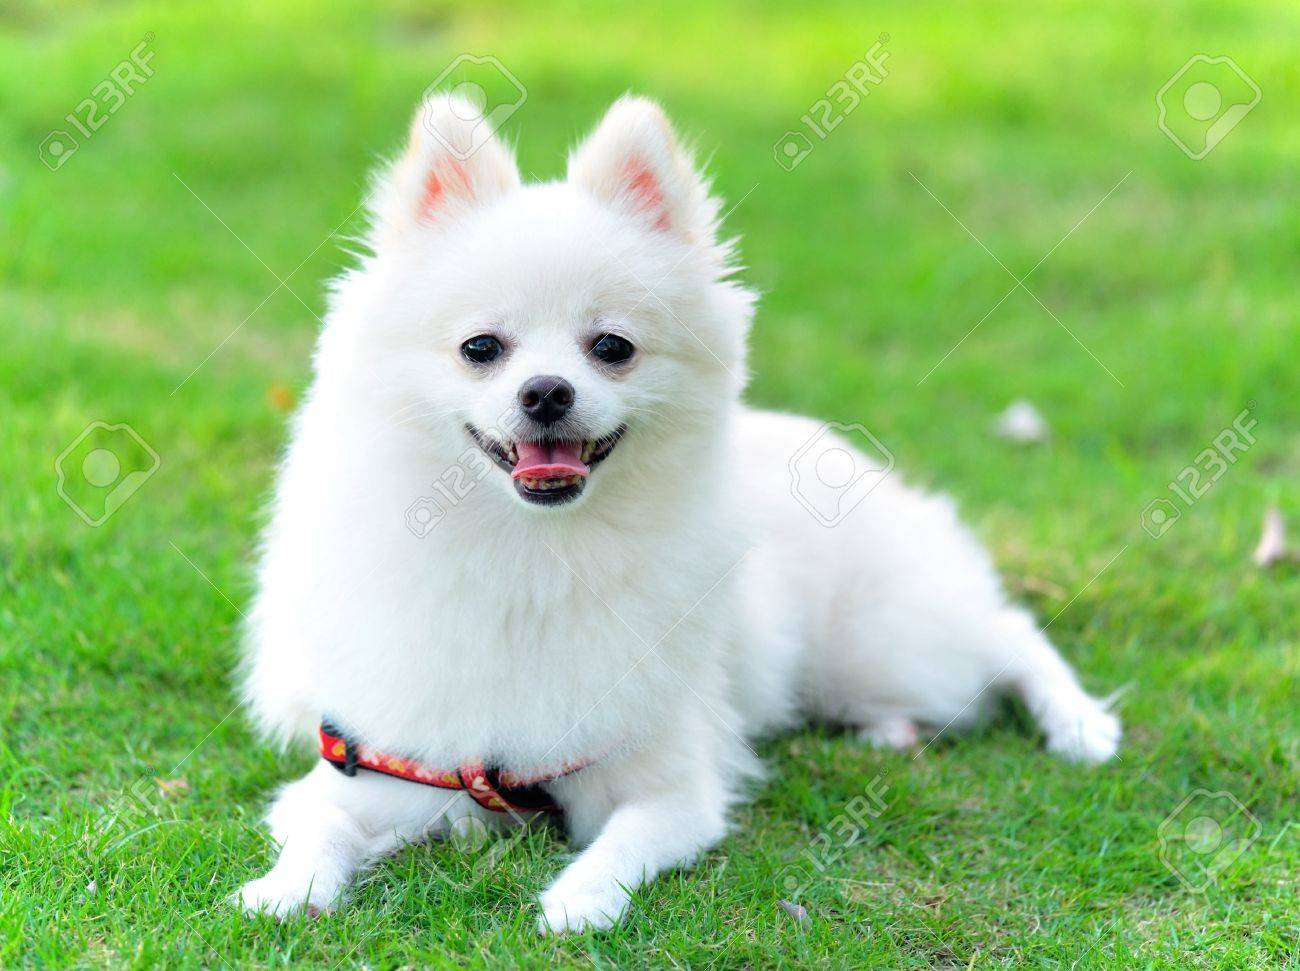 Pomeranian Puppy Stock Photos And Images 123rf